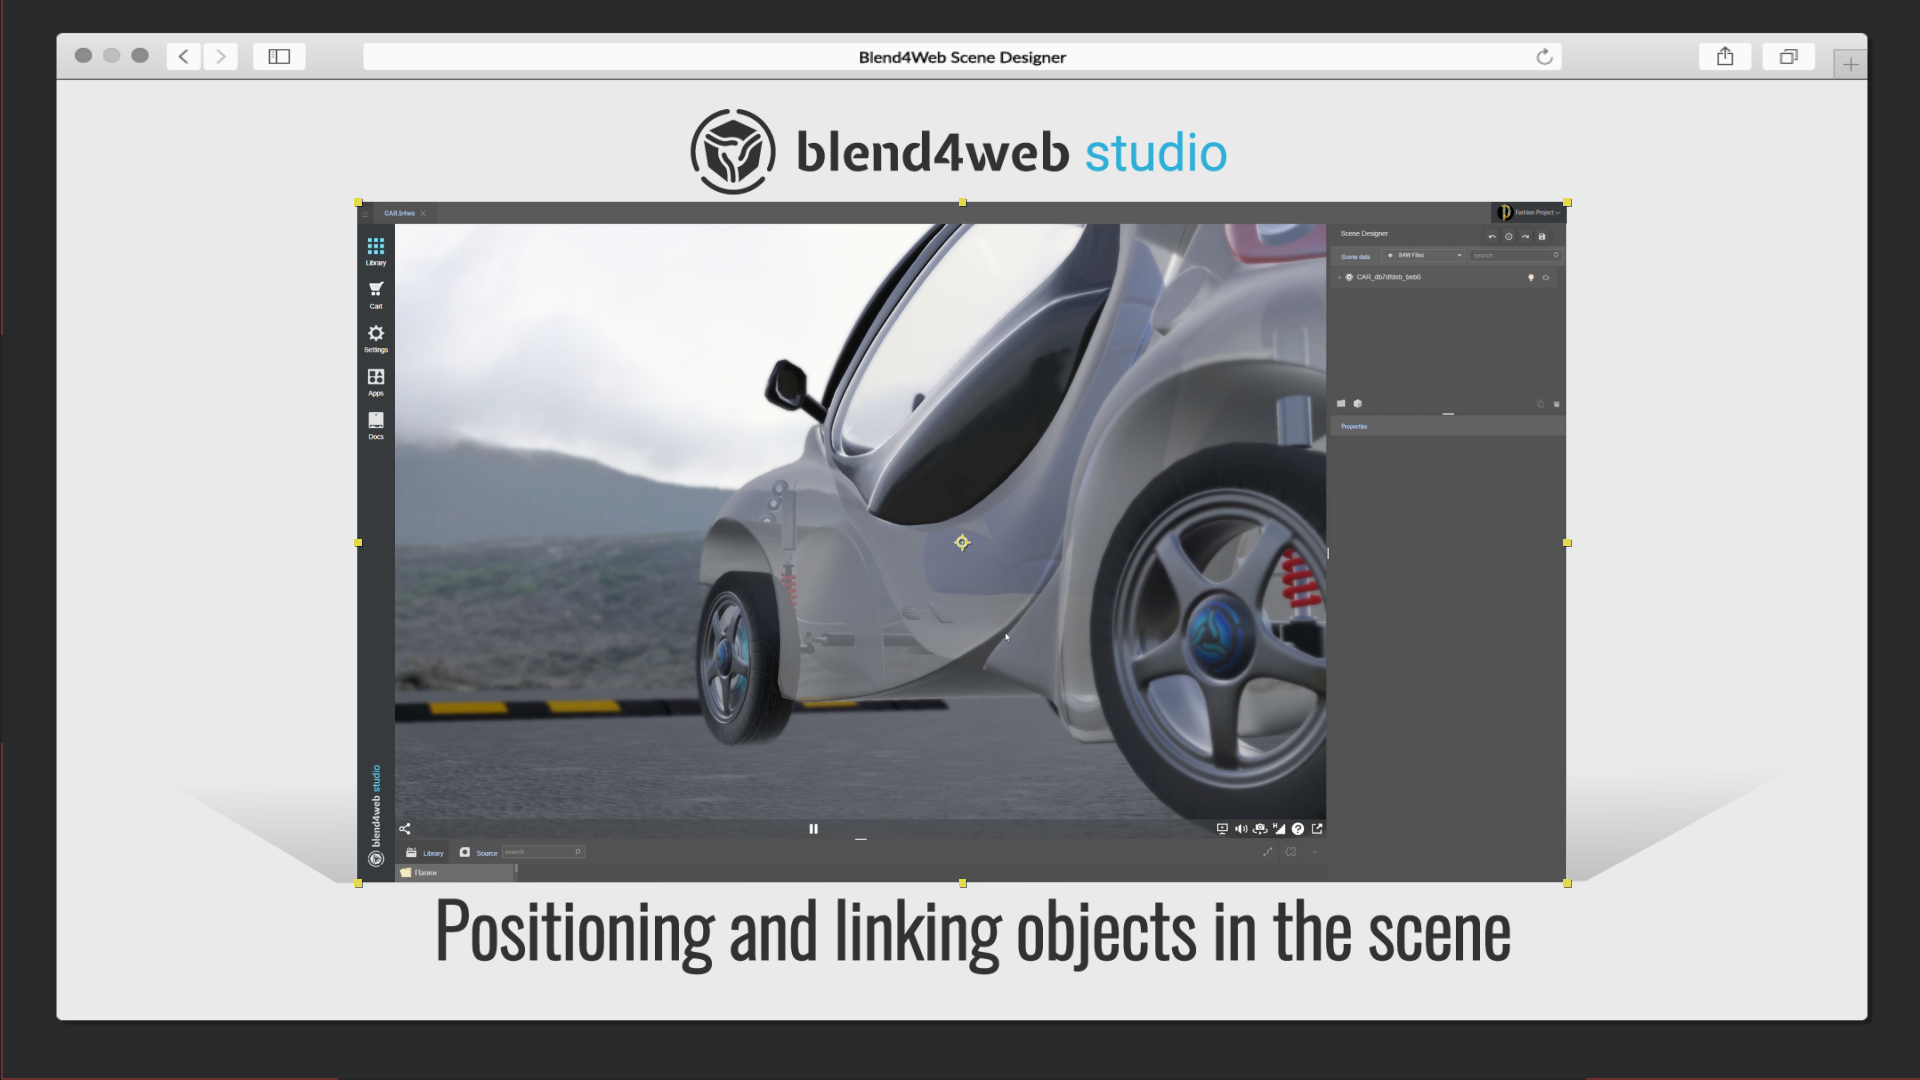 Blend4Web Scene Designer: positioning and linking objects in the scene